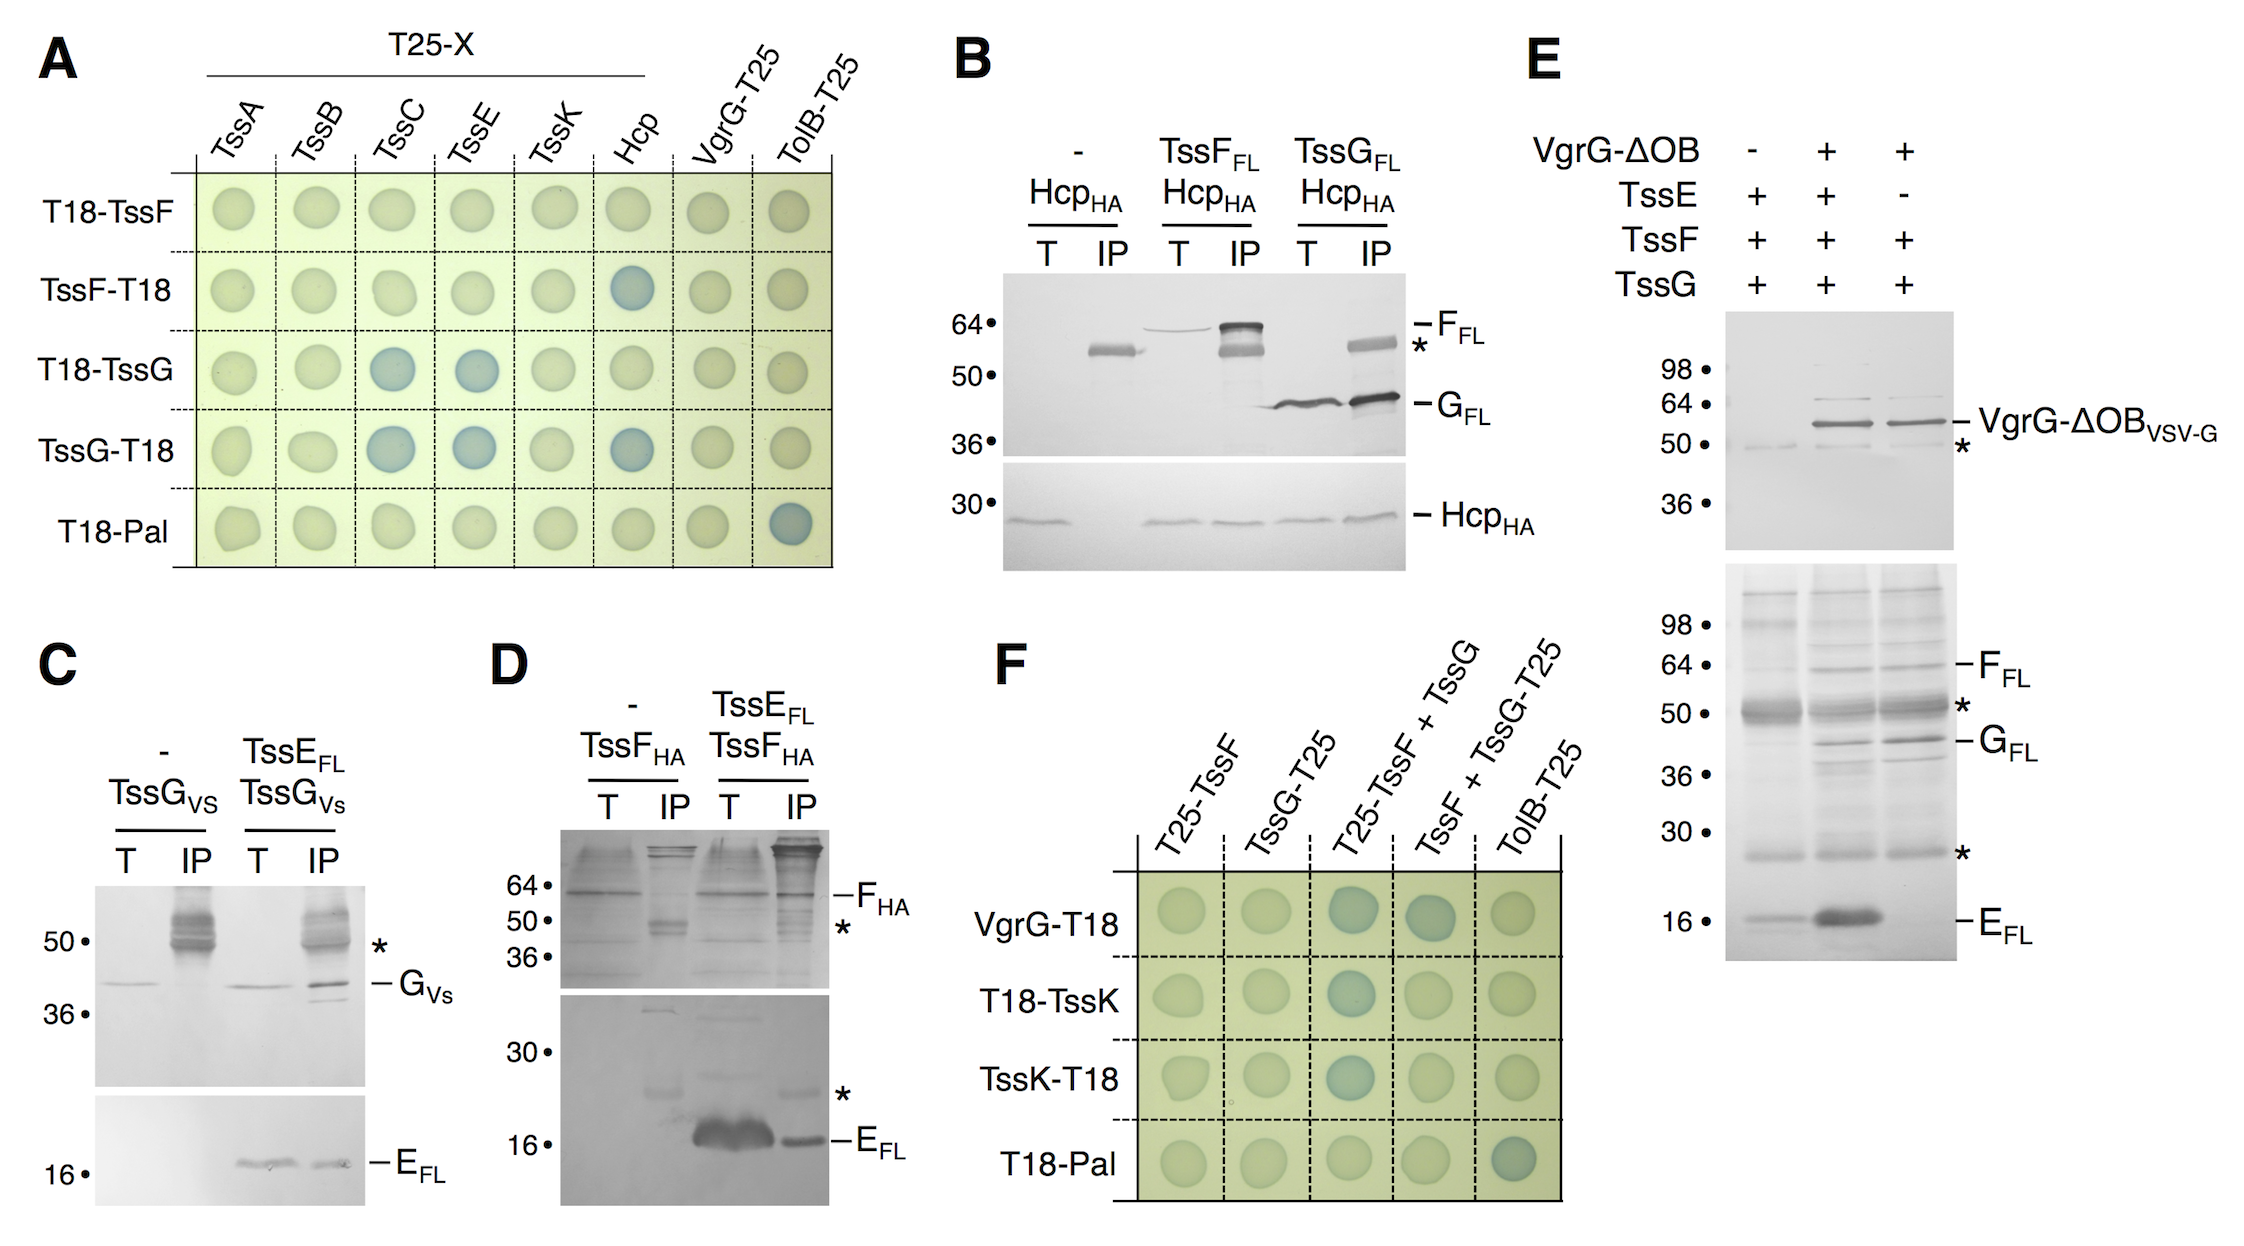 TssF and TssG interact with phage-like T6SS components.